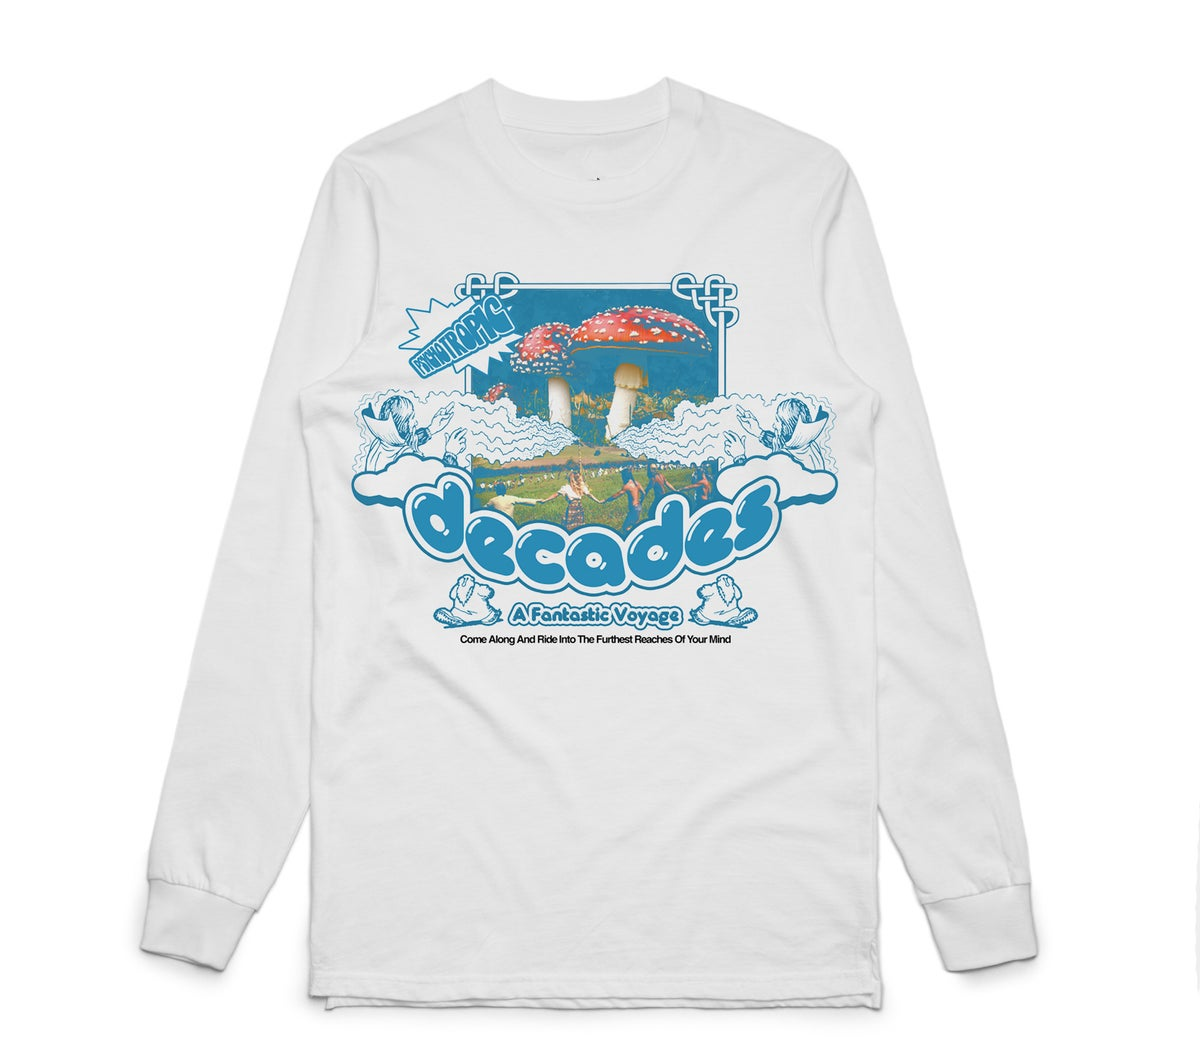 Image of Fantastic Voyage Long Sleeve Tee